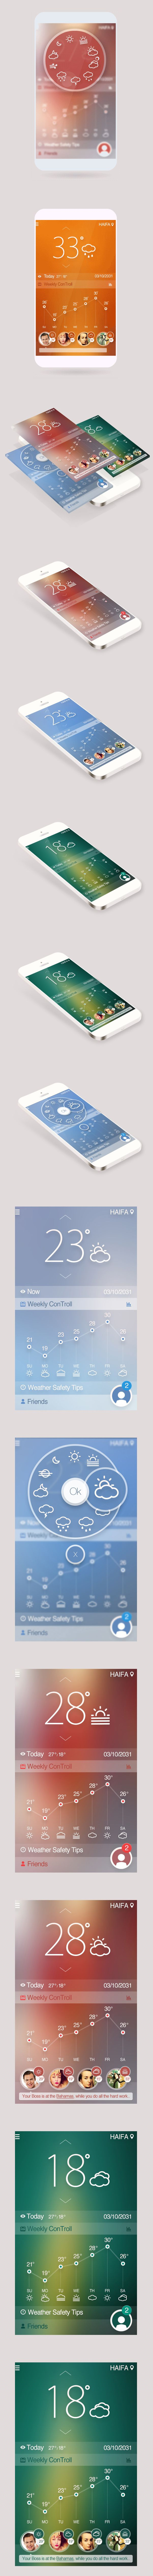 Weather App web design, design, responsive design, website, ux, ui, mobile